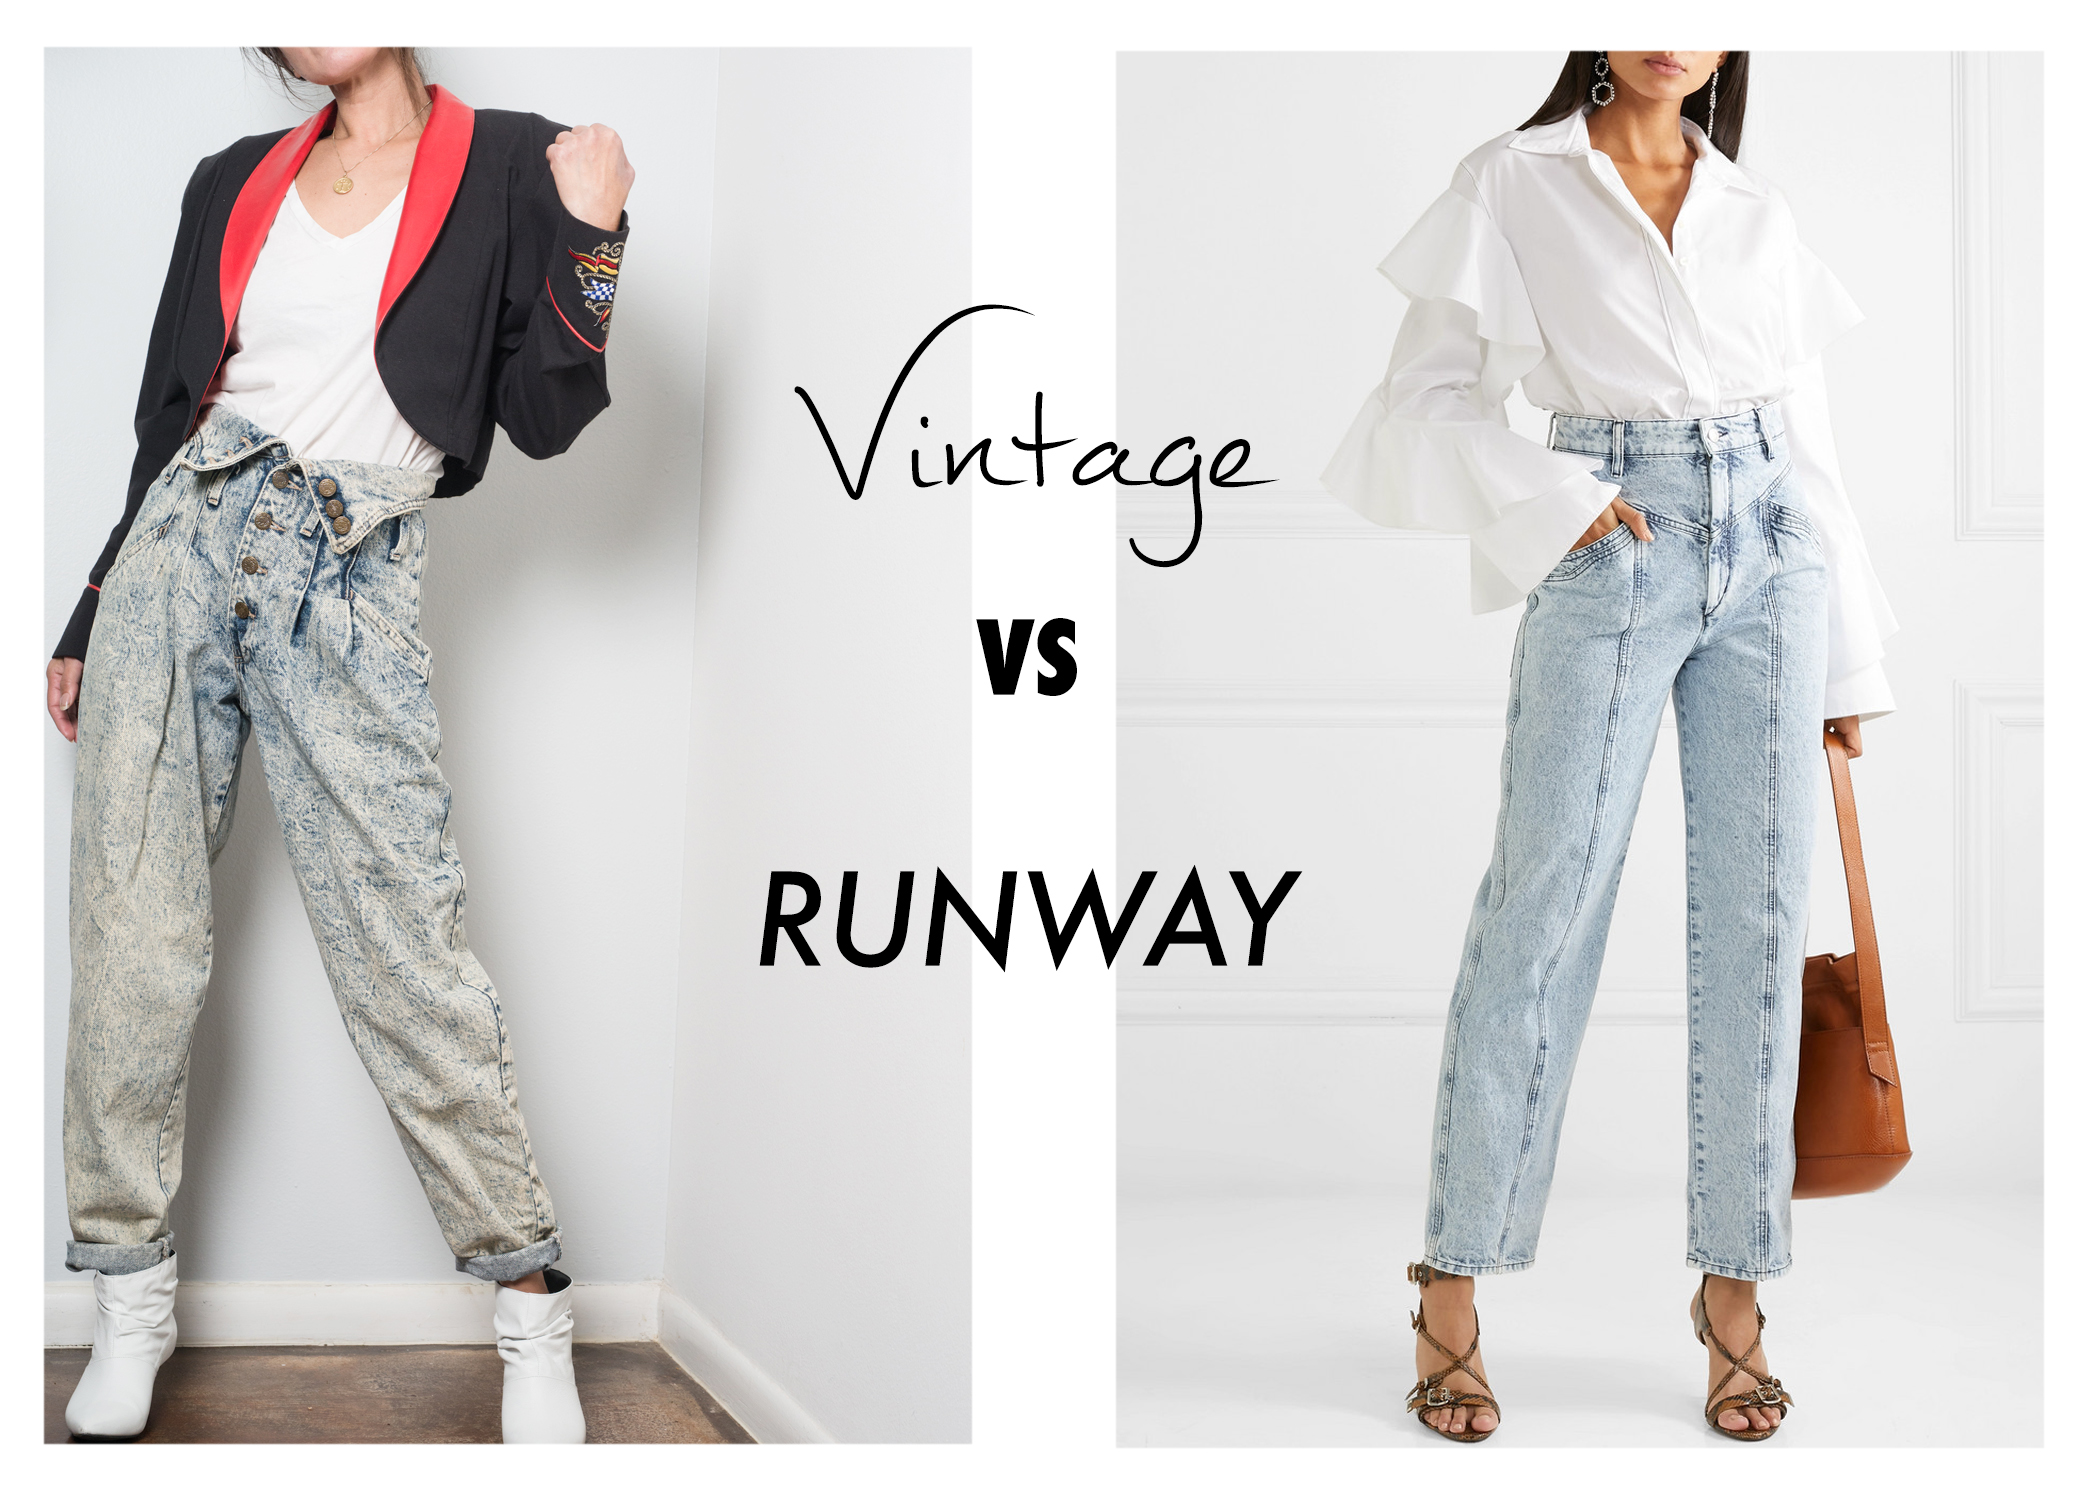 A_Part_of_the_Rest_vintage_1980s_high_waist_denim_vs_Isabel_marant_lenia_jean.jpg